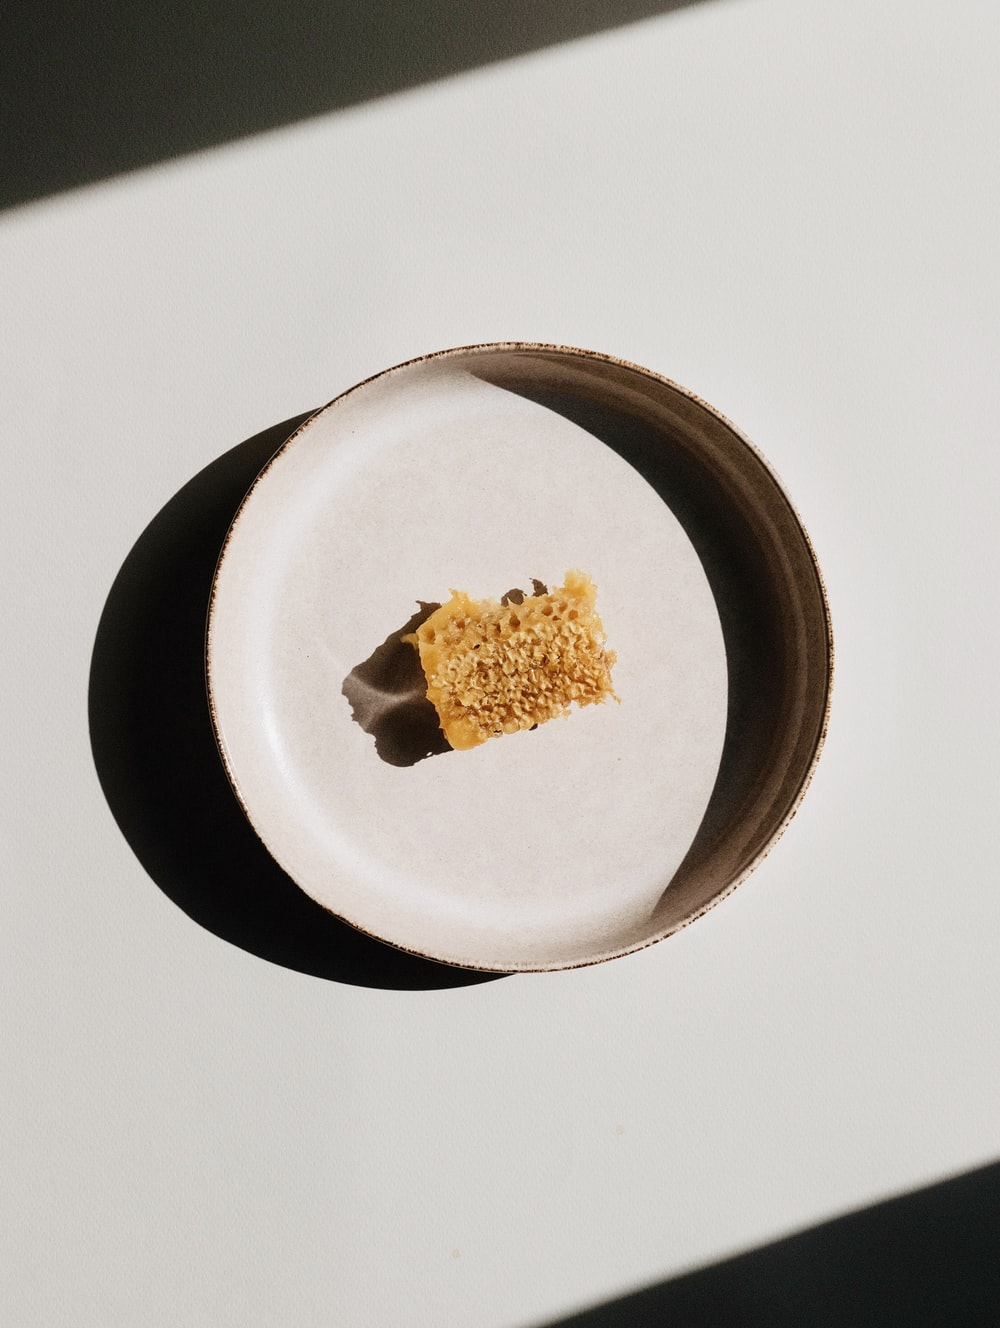 brown food on white and black ceramic plate